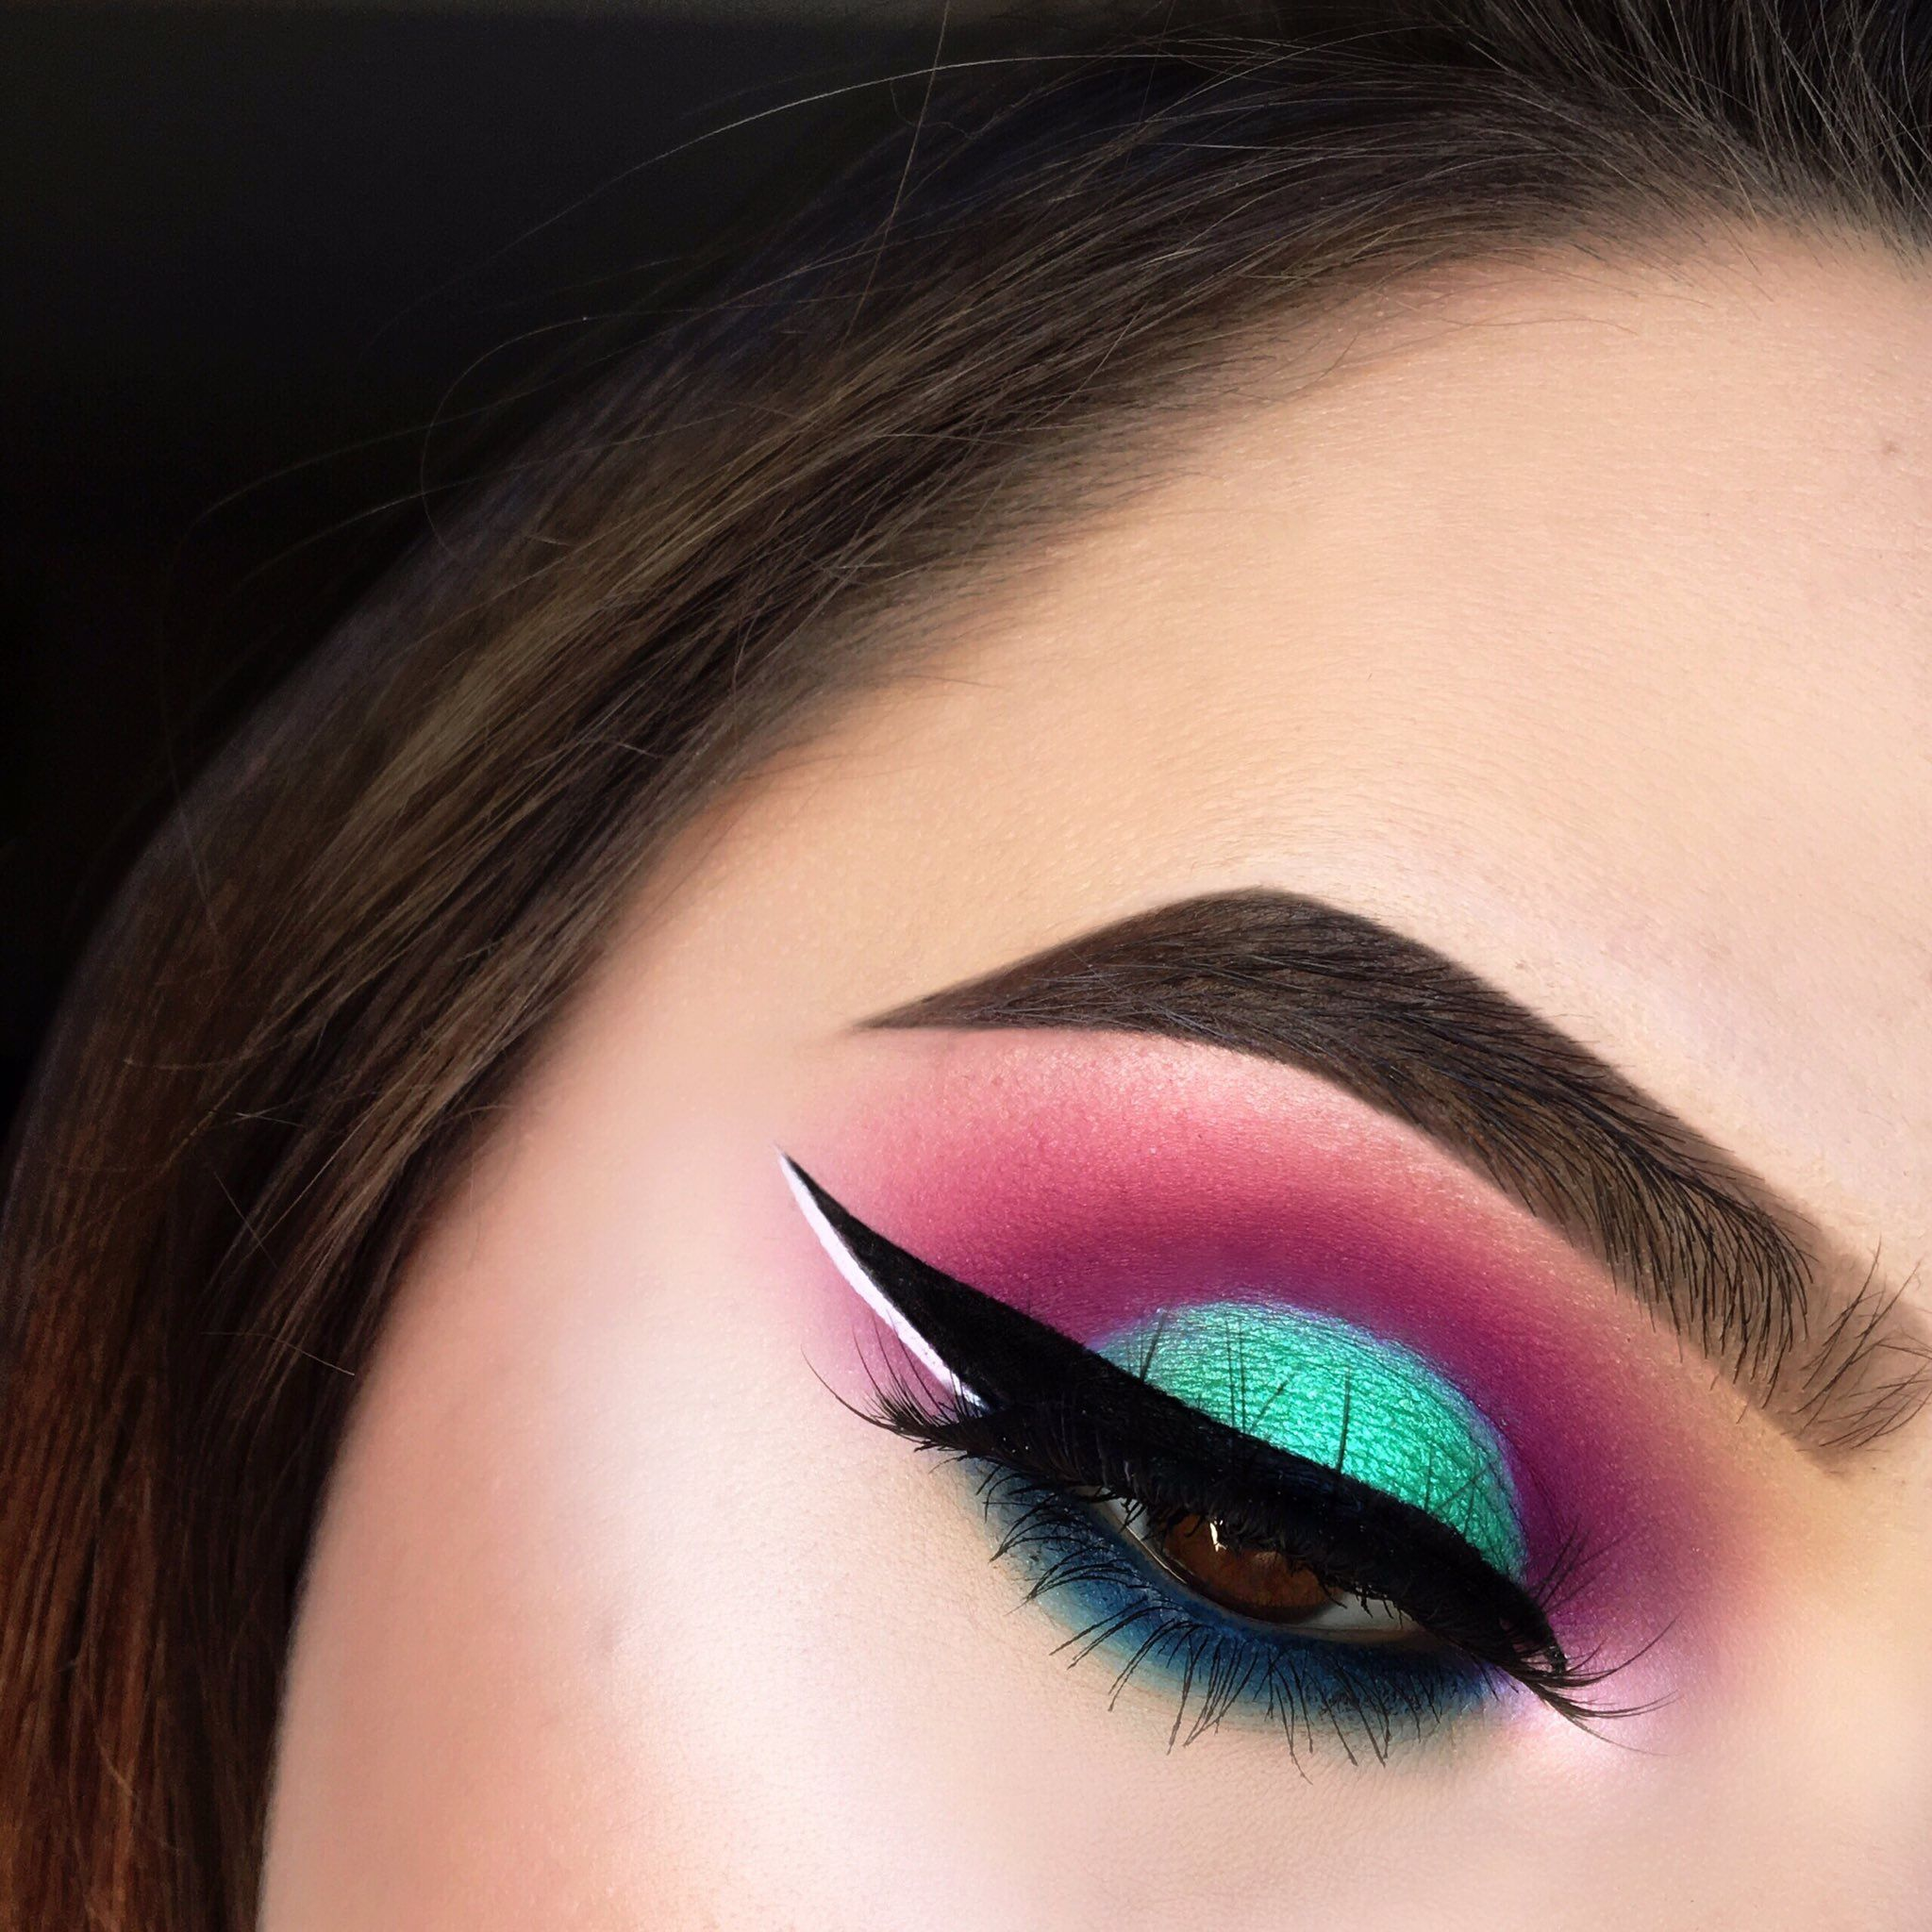 2019 year for girls- Tumblr art Makeup pictures